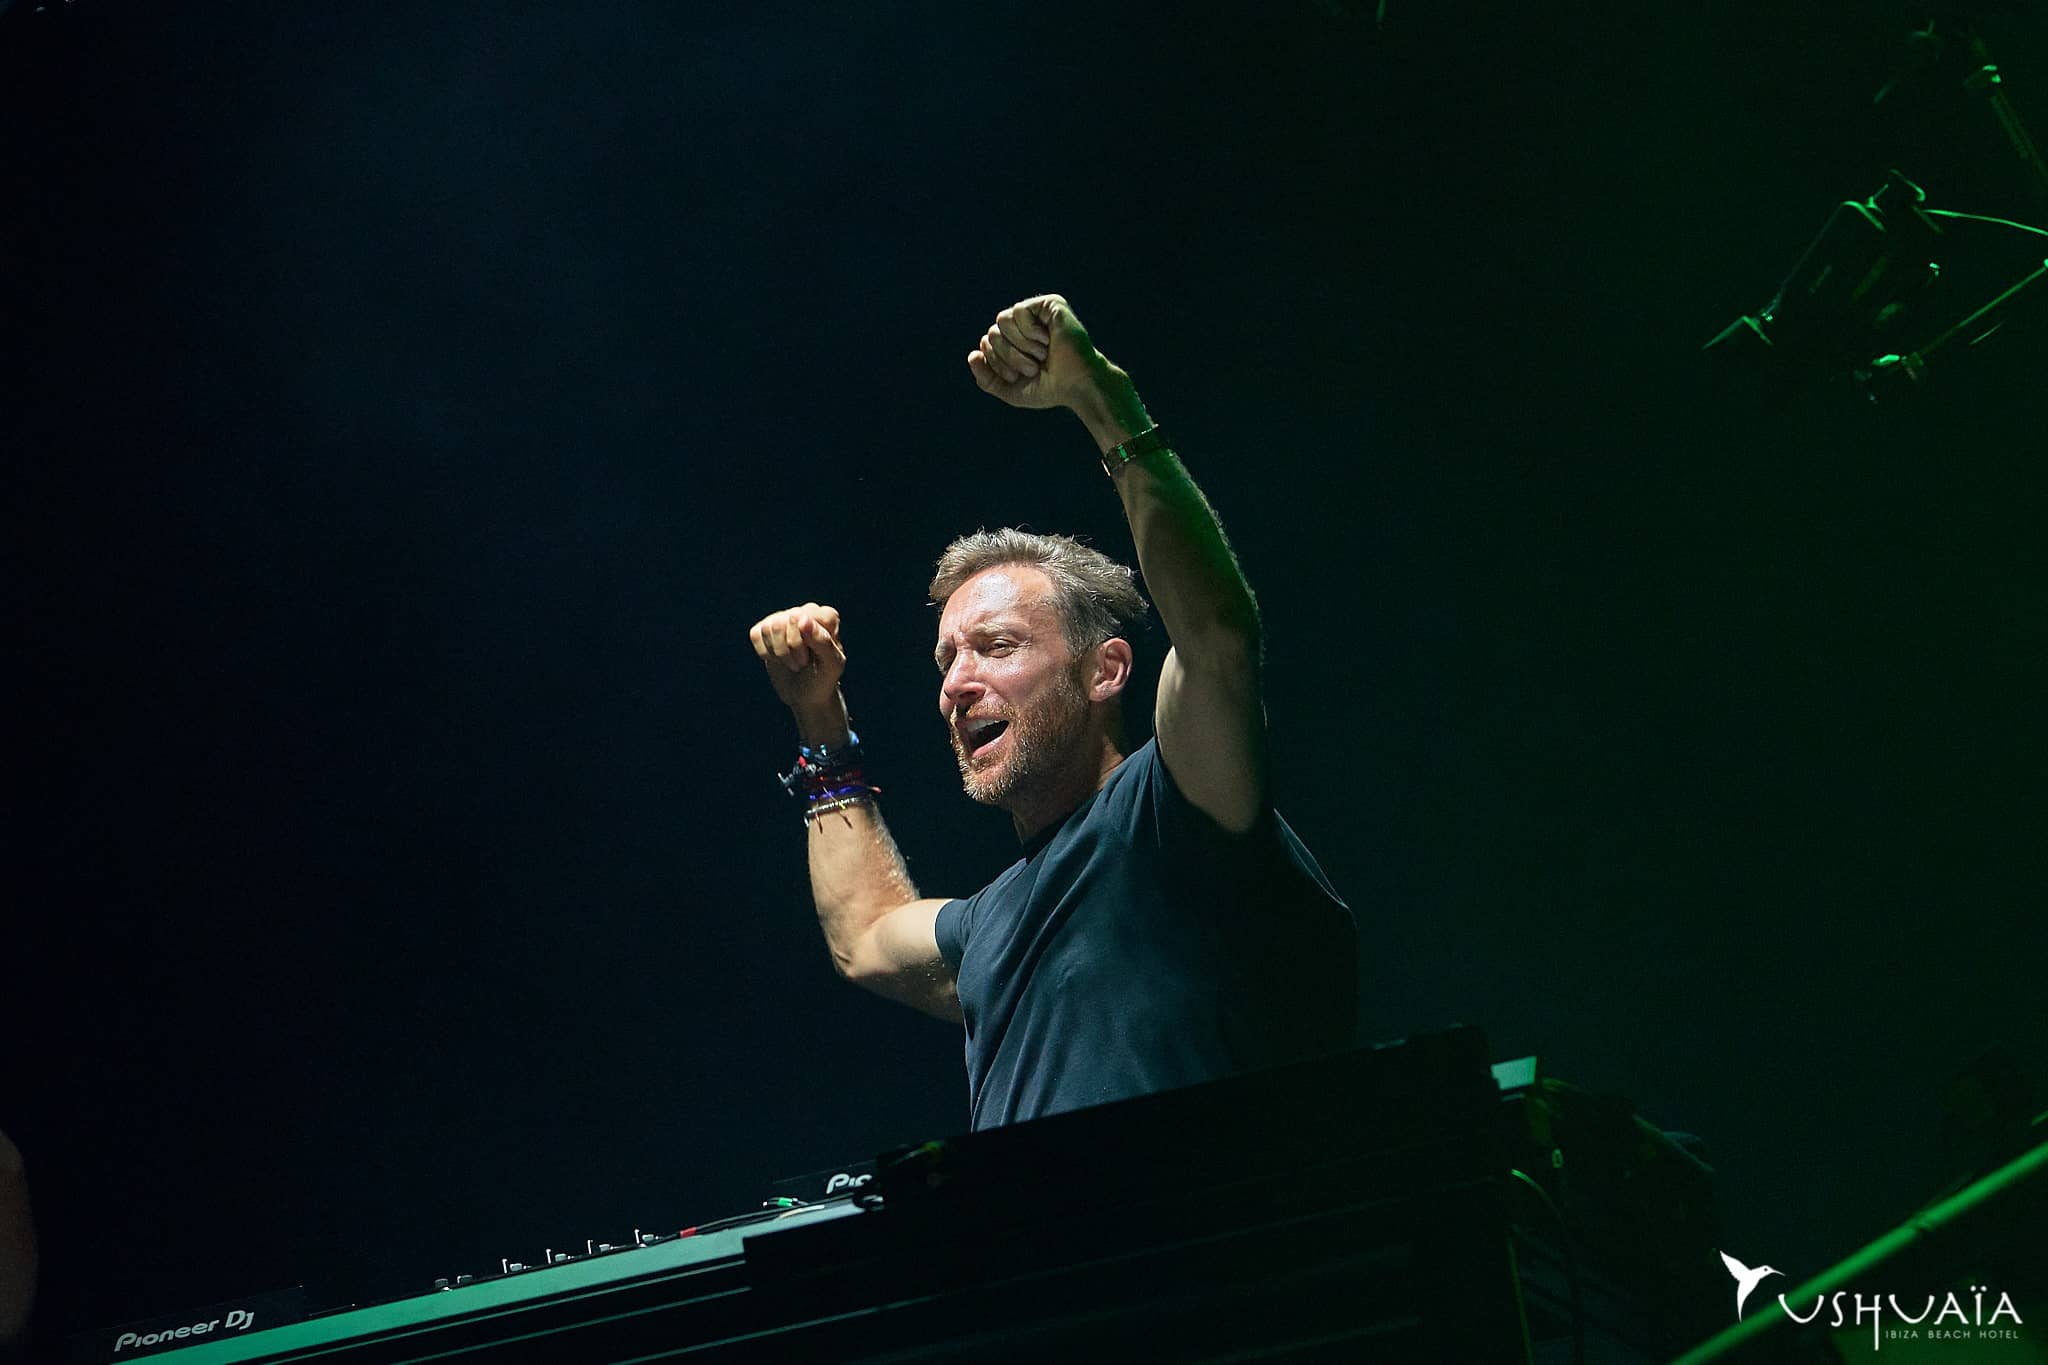 'Delirious' David Guetta